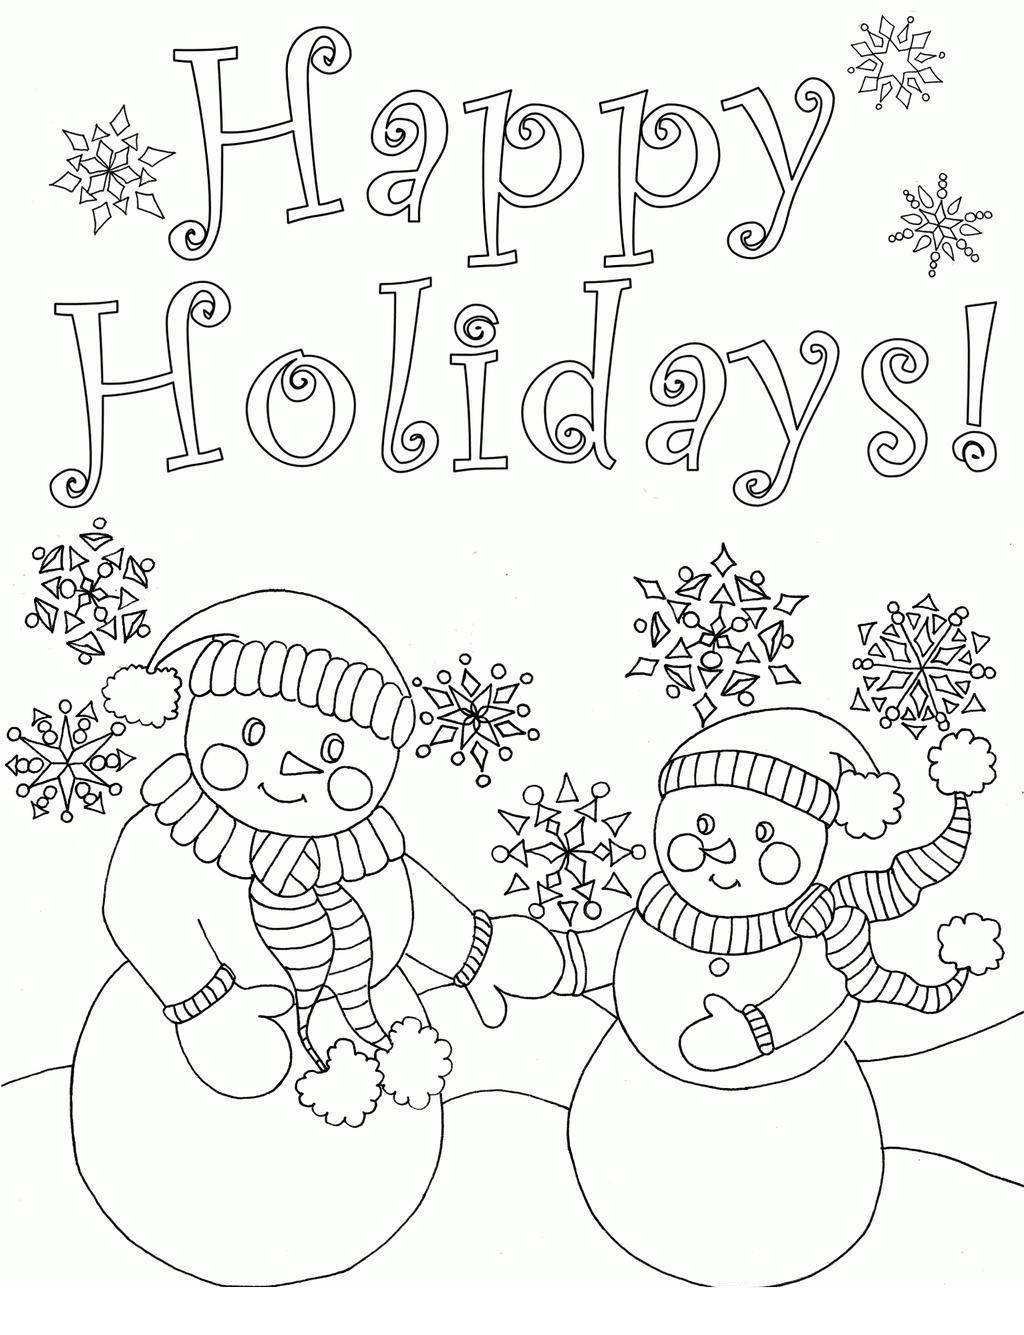 Spanish Holiday Coloring Pages